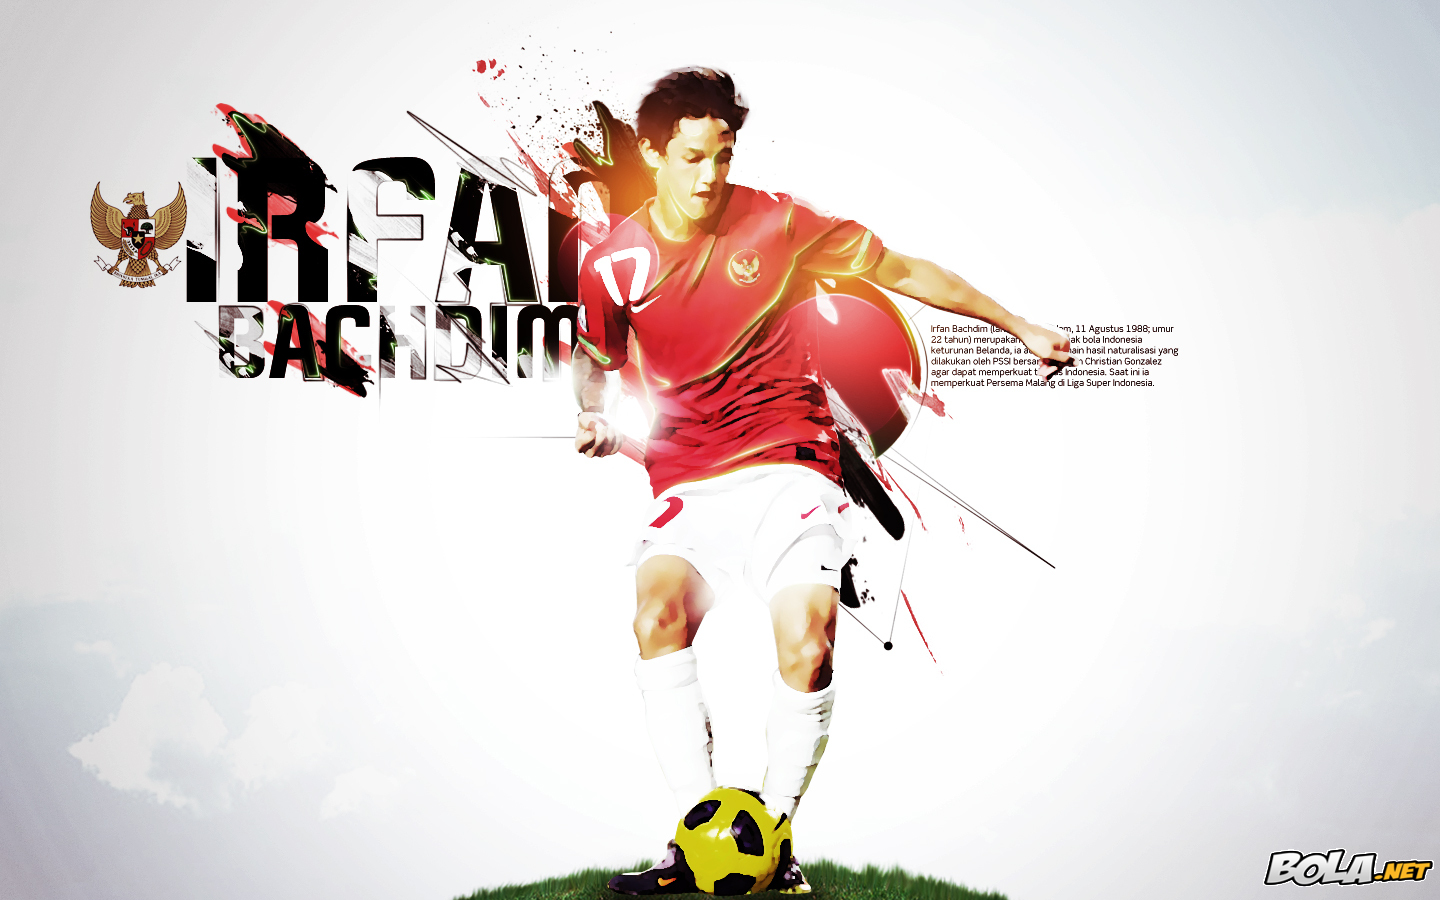 Wallpapers Timnas Indonesia: Wallpaper Timnas Indonesia: Irfan Bachdim